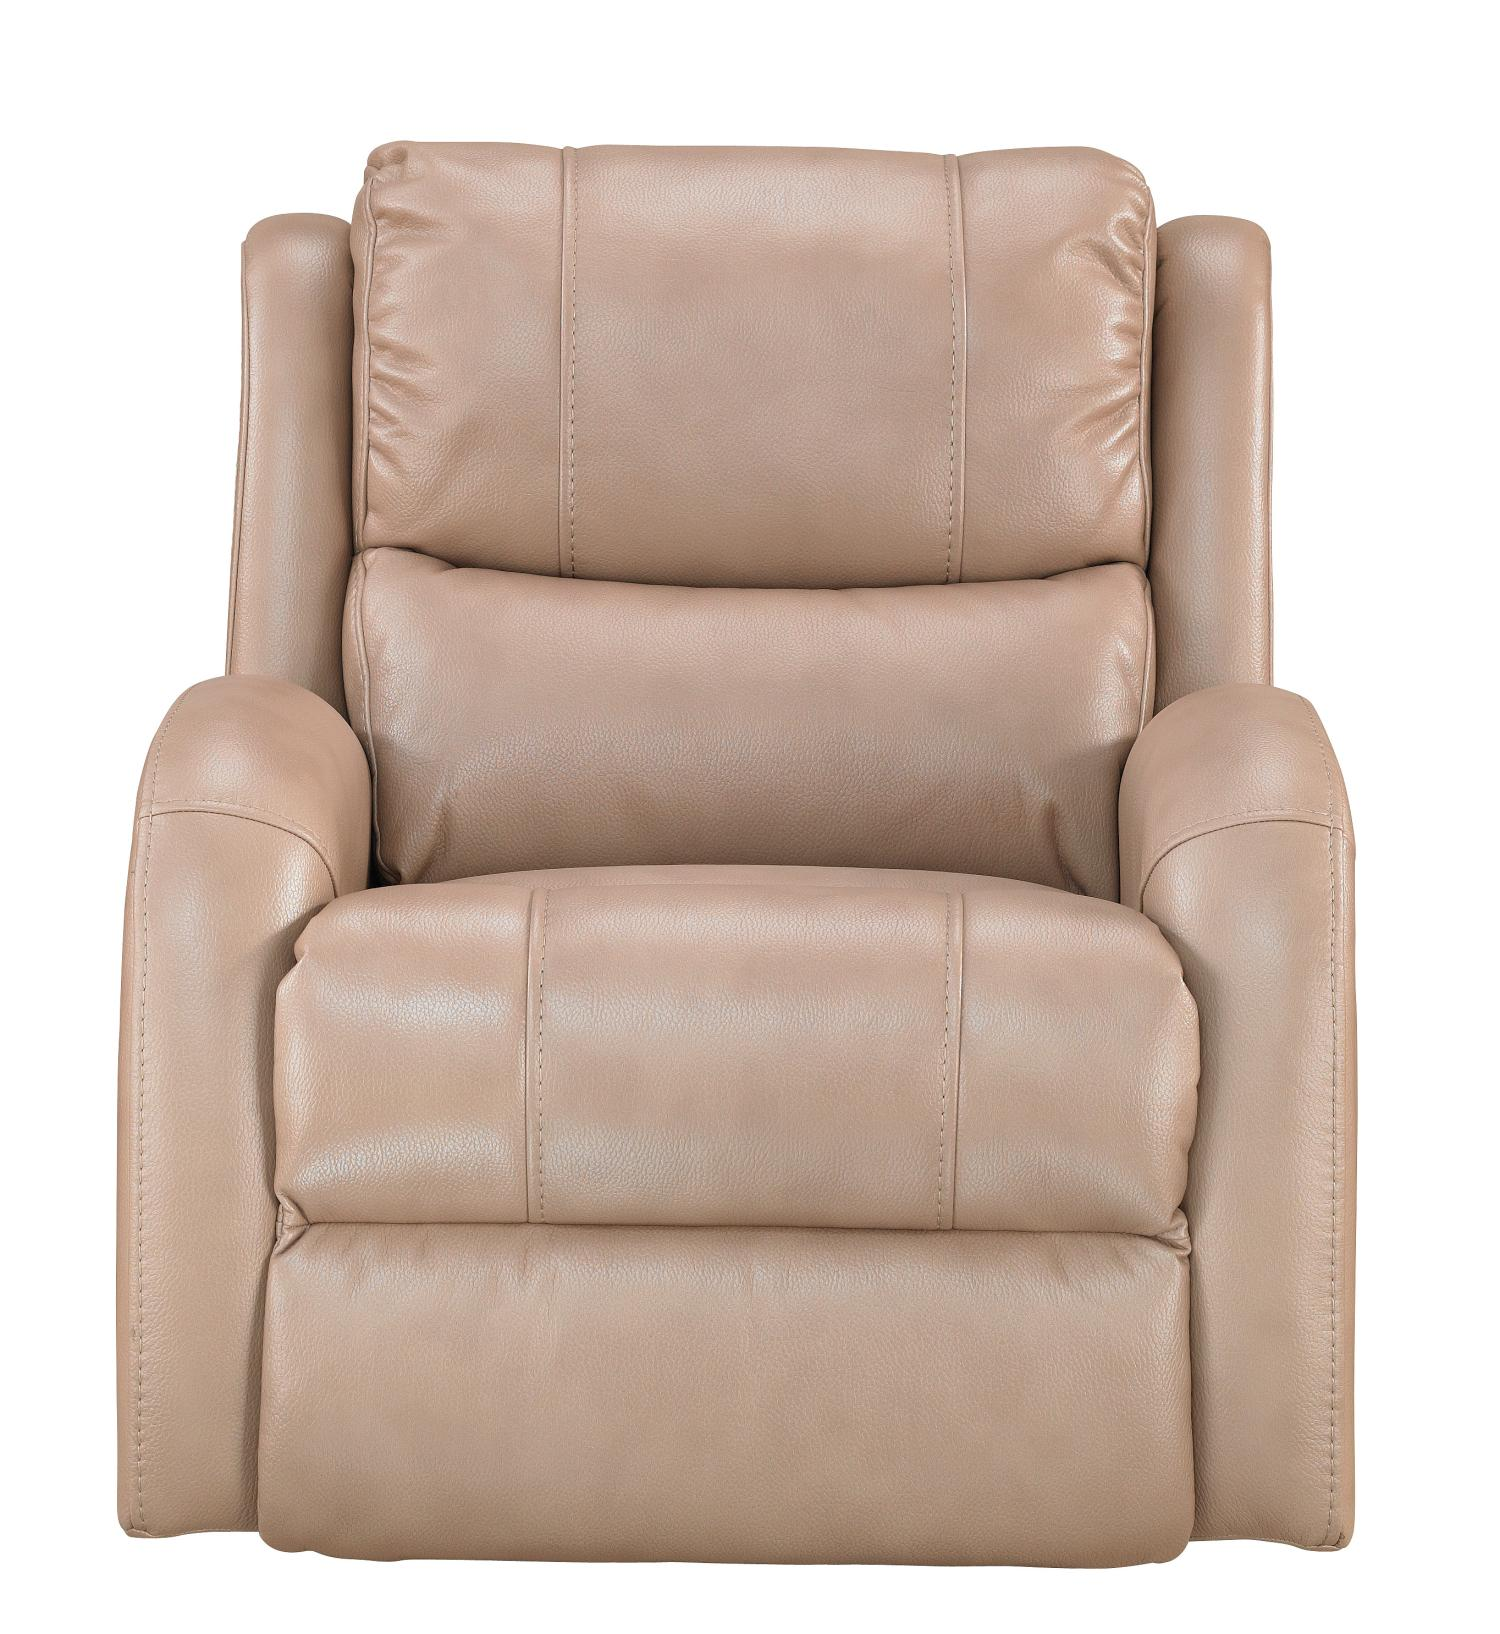 Good Corsica Power Recliner Taupe With Discount Furniture Stores In Harrisburg  Pa